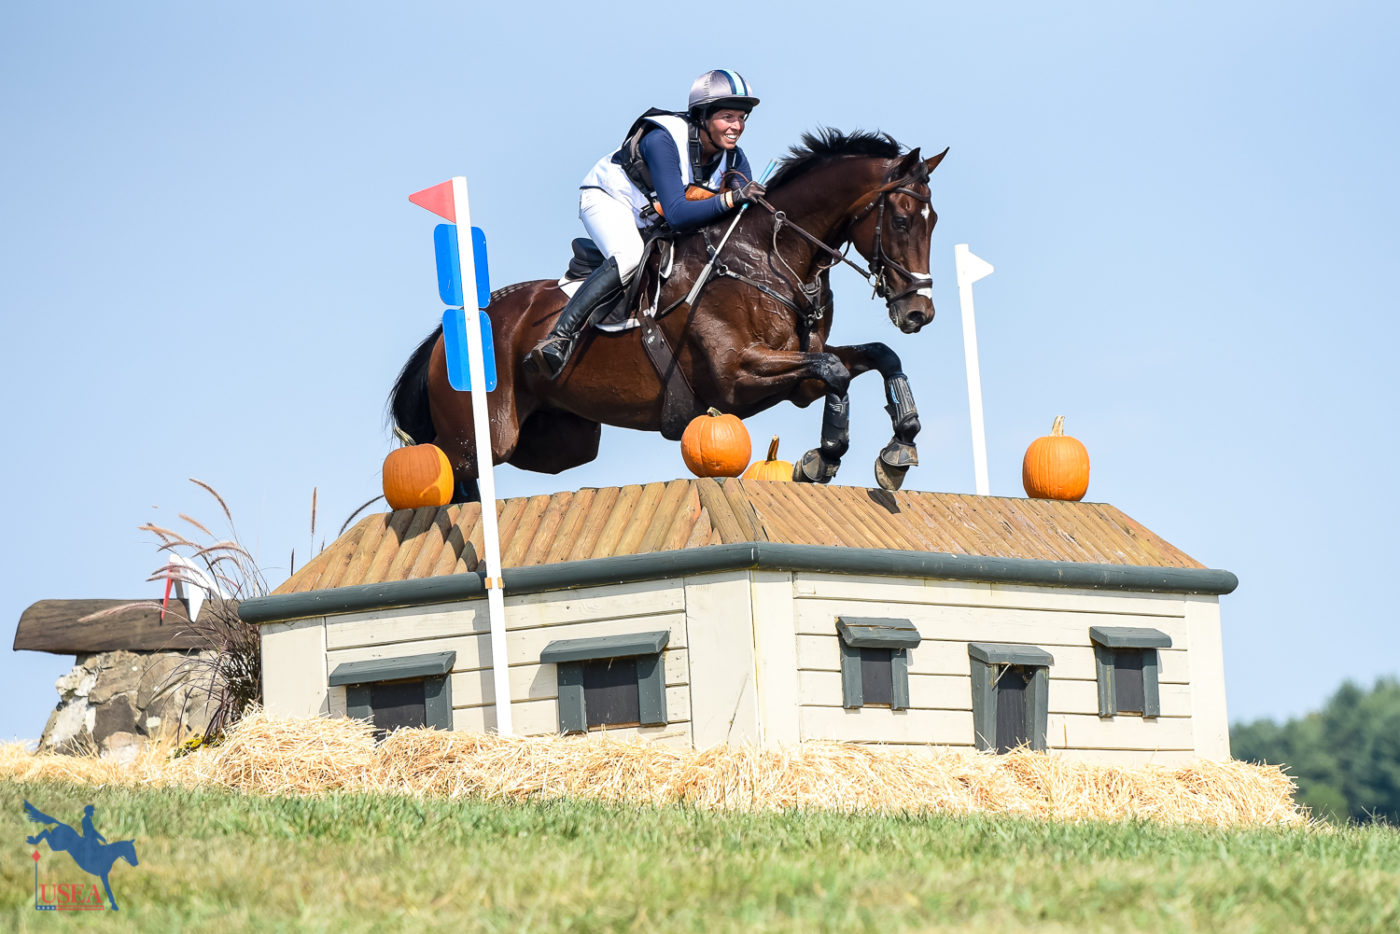 4th - Meghan O'Donoghue and Palm Crescent - 39.9